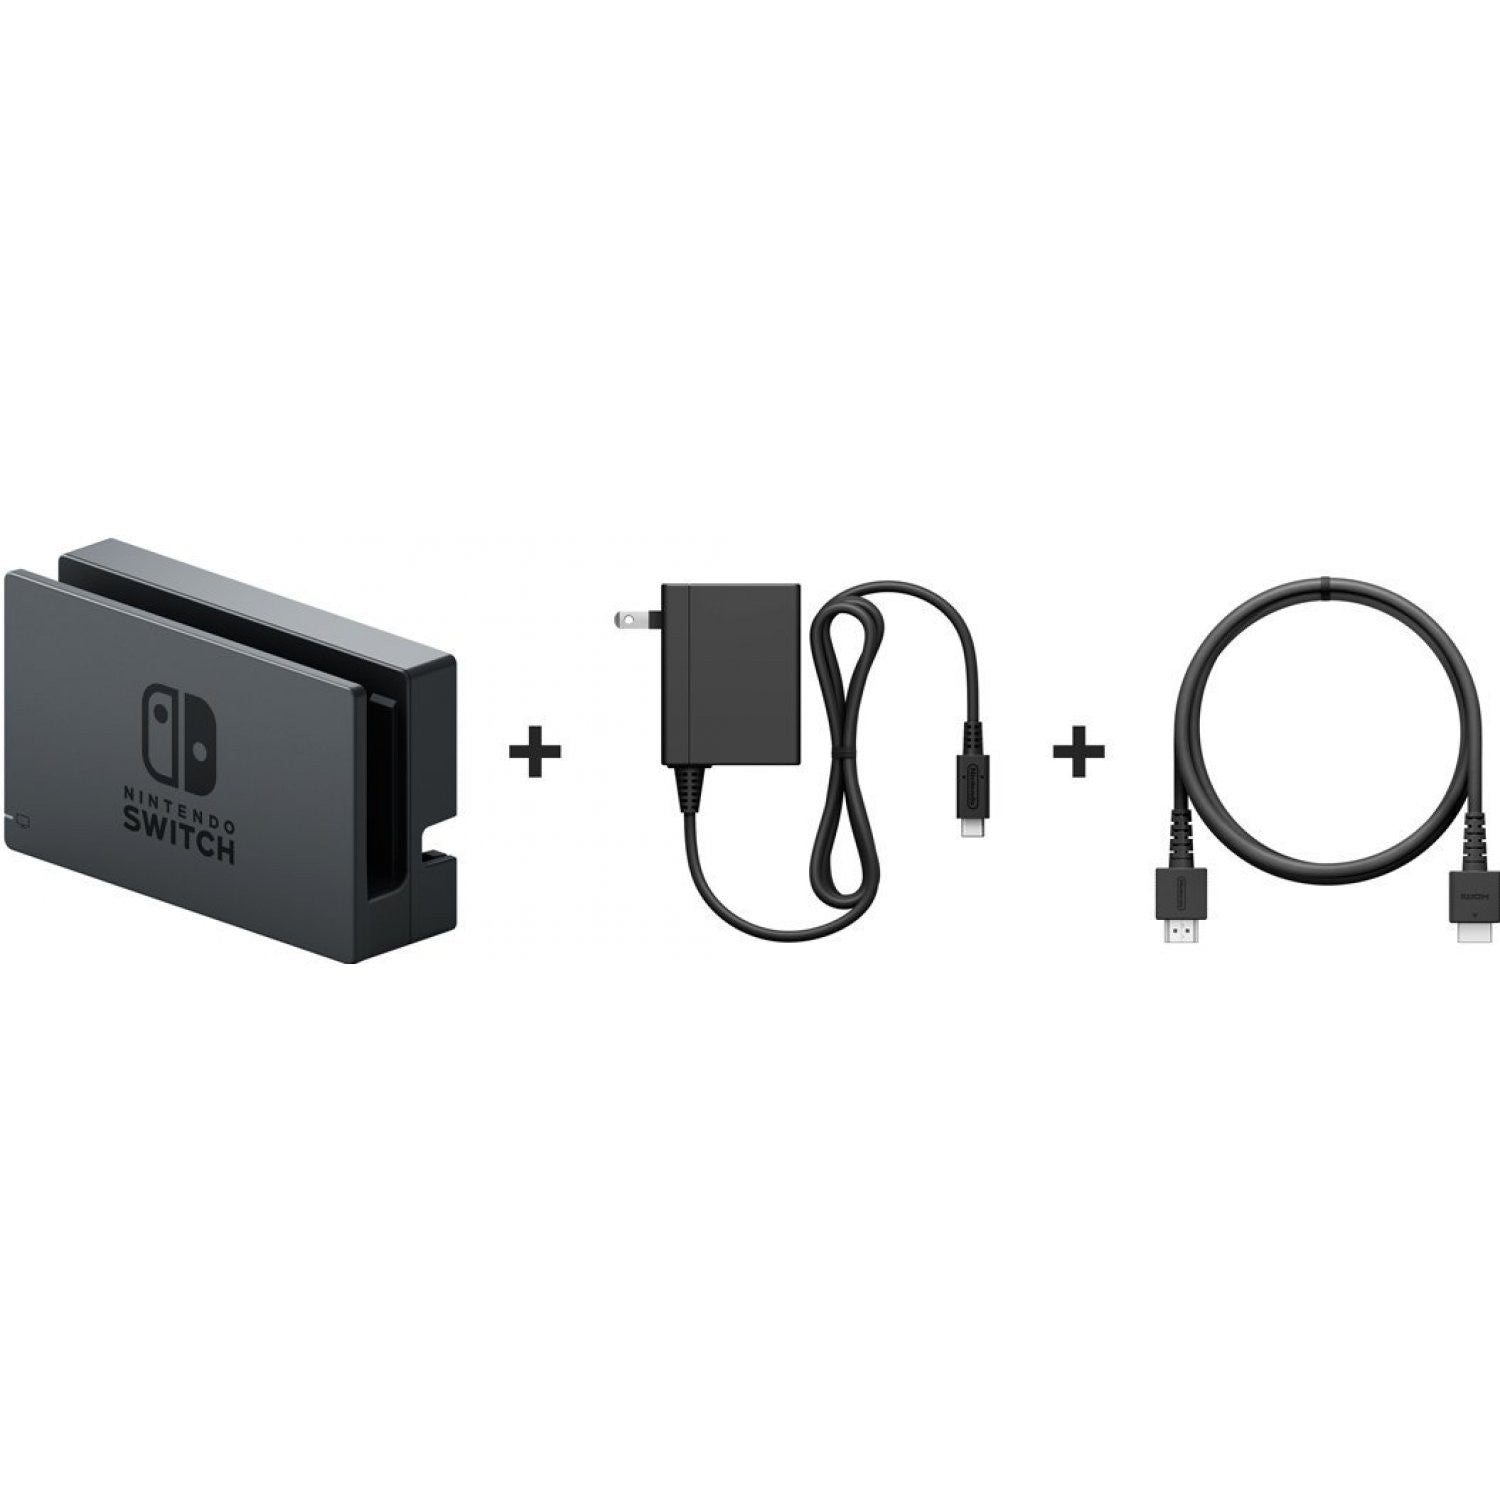 Products Page 17 Switch Gear Club Unlimited English Pal Games Nintendo Dock Set